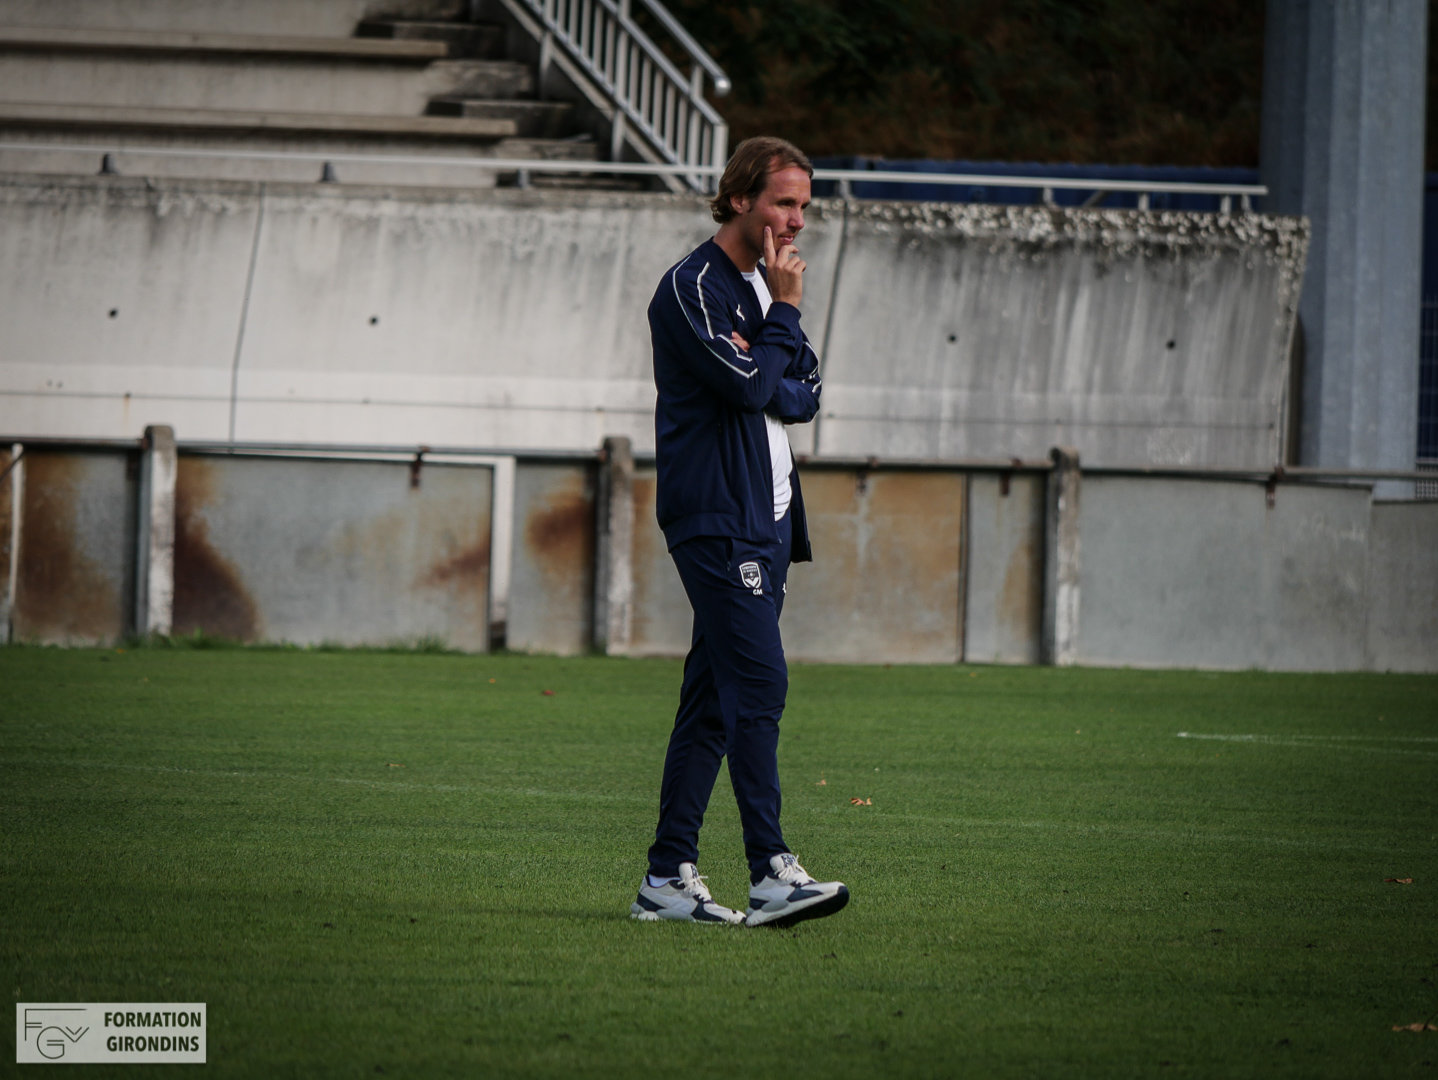 Cfa Girondins : Manu Giudicelli - « II faut continuer, ce n'est que le début » - Formation Girondins